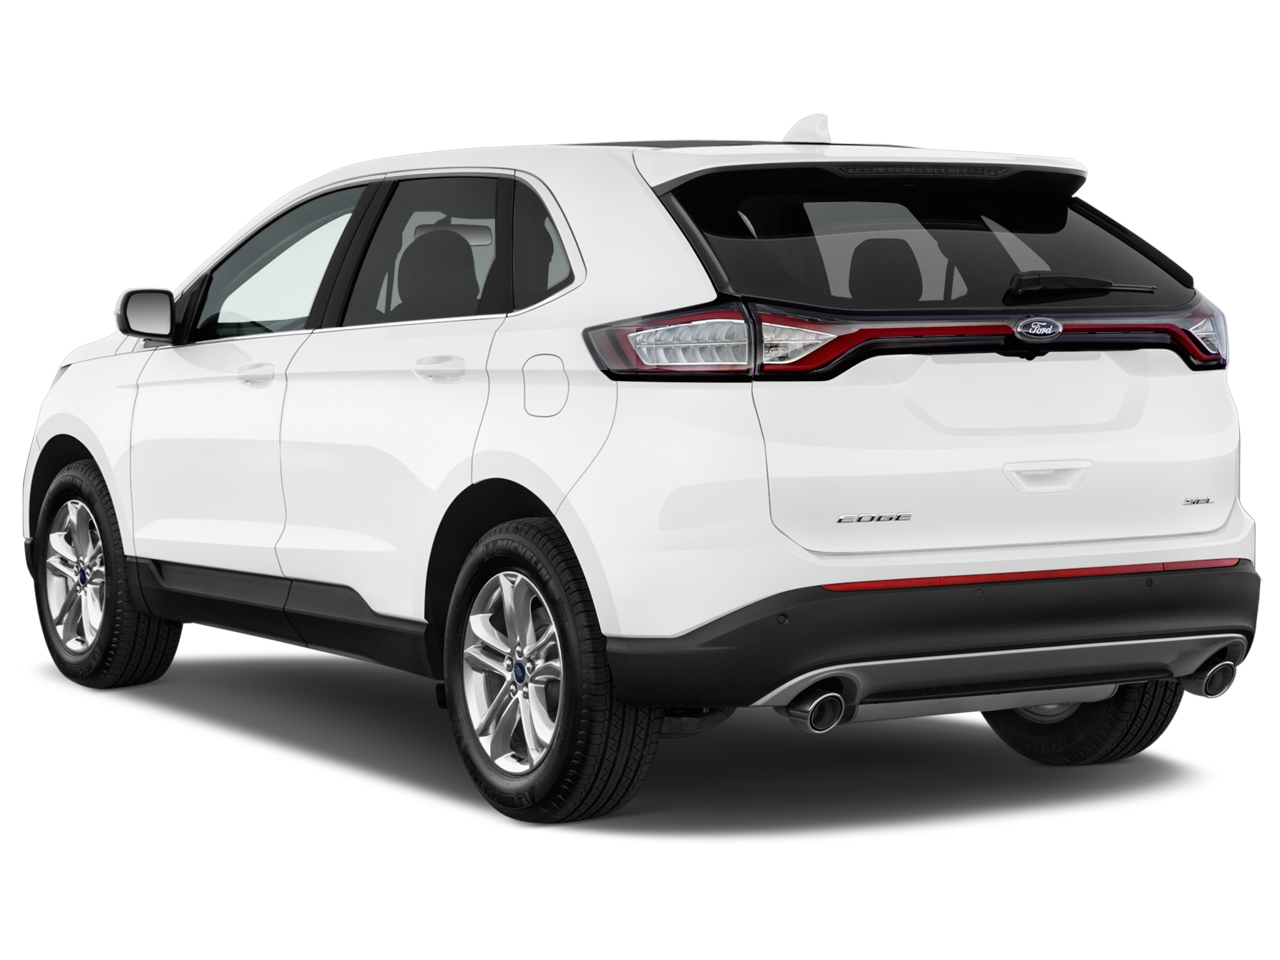 ford edge 2018 3 5l v6 titanium awd in uae new car prices specs reviews photos yallamotor. Black Bedroom Furniture Sets. Home Design Ideas